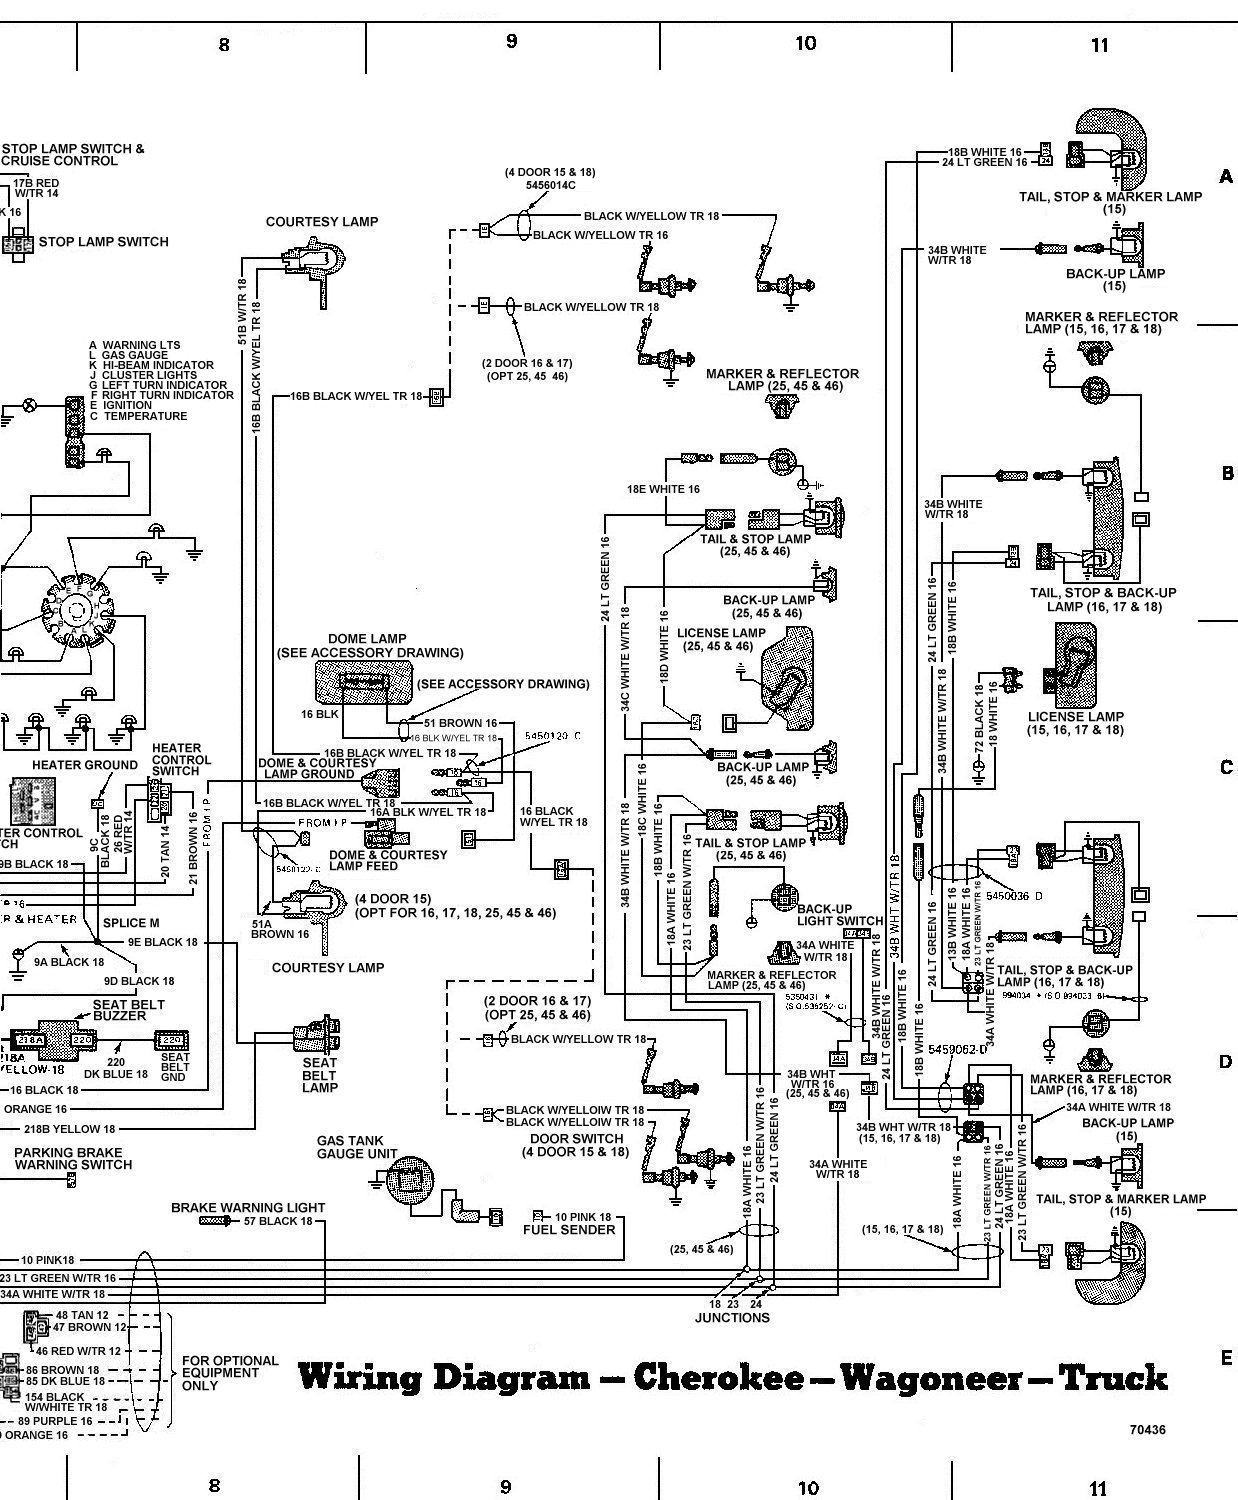 83 jeep grand cherokee wiring diagram wiring diagram third level83 jeep grand cherokee wiring diagram wiring schematic 2000 grand cherokee radio wiring 83 jeep grand cherokee wiring diagram